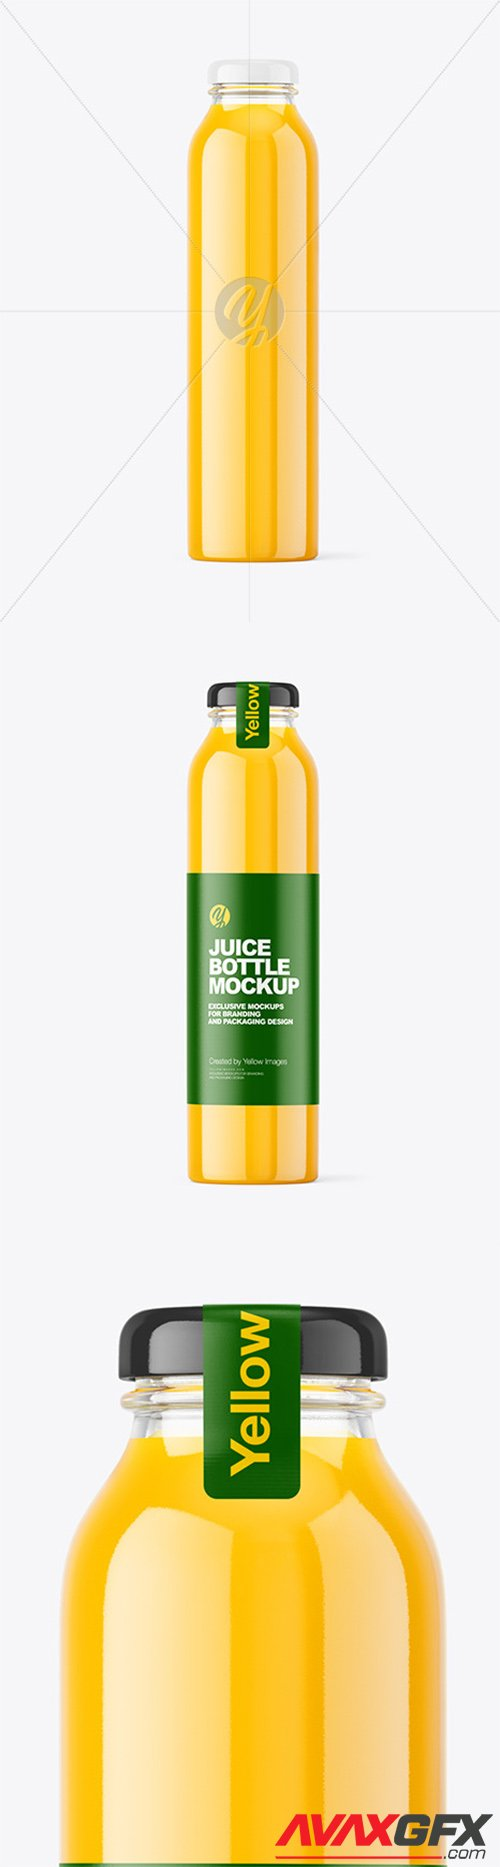 Orange Juice Bottle Mockup 65678